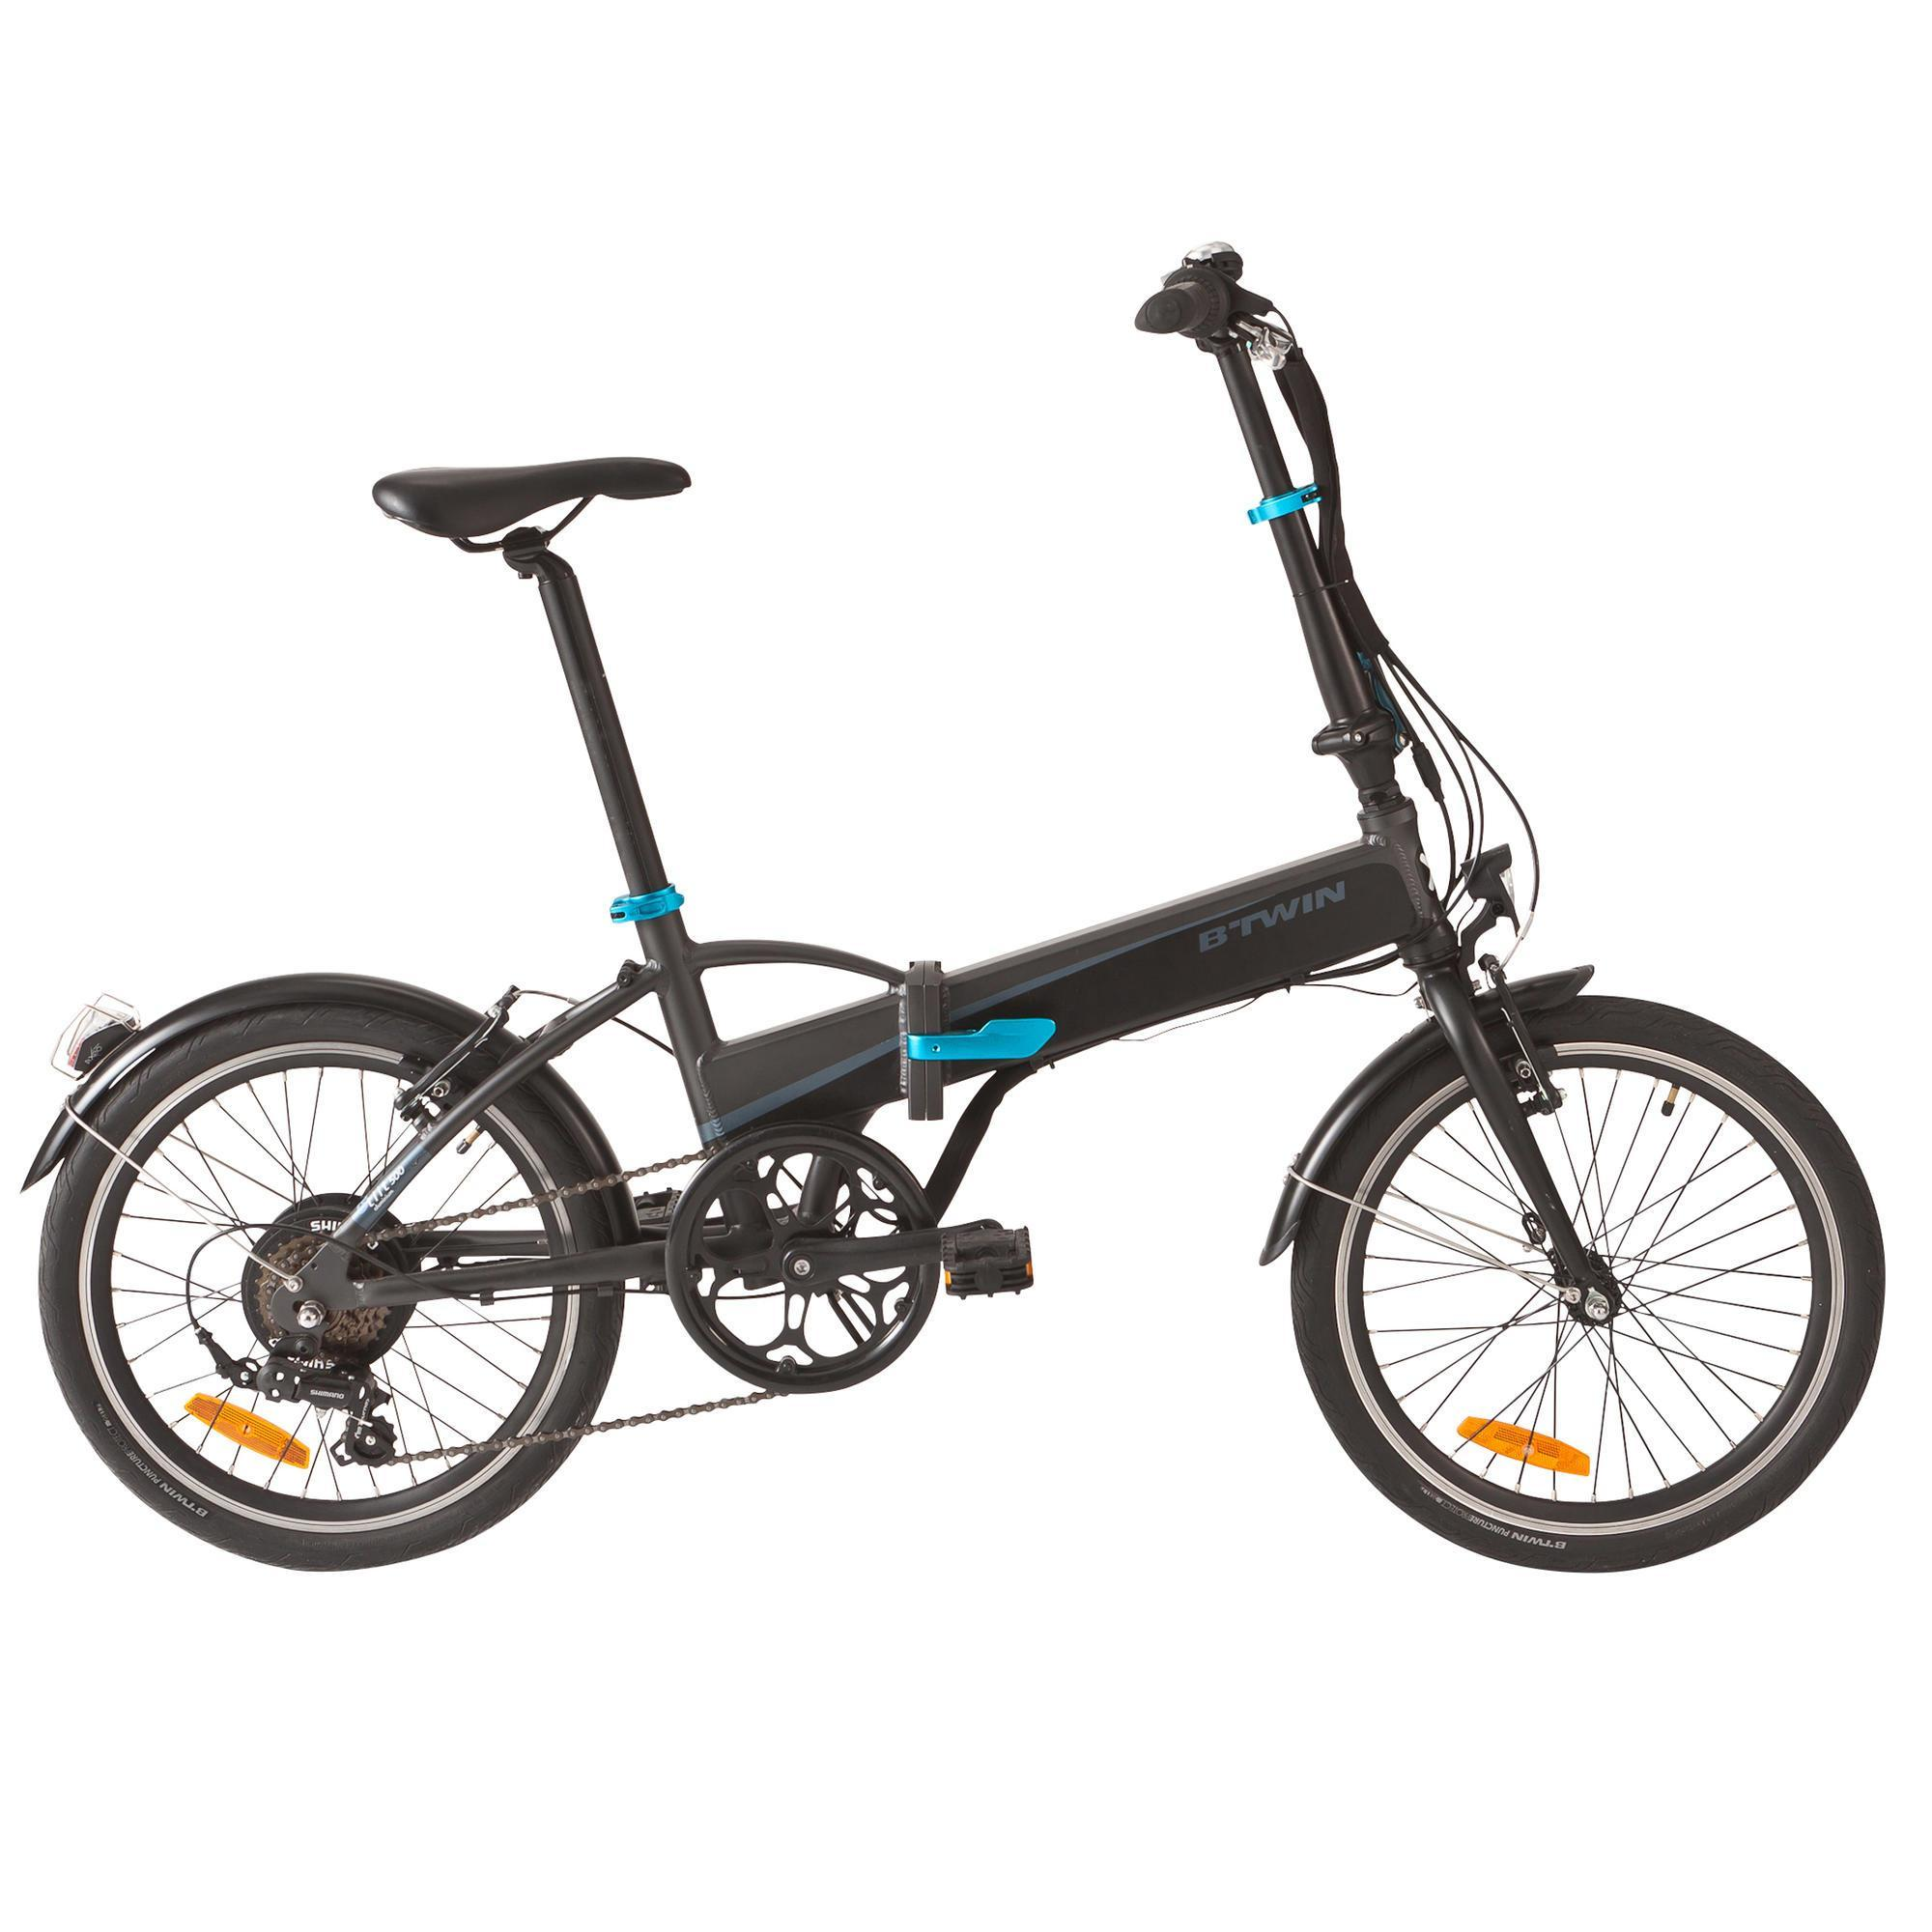 e bike faltrad tilt 500 b 39 twin decathlon. Black Bedroom Furniture Sets. Home Design Ideas